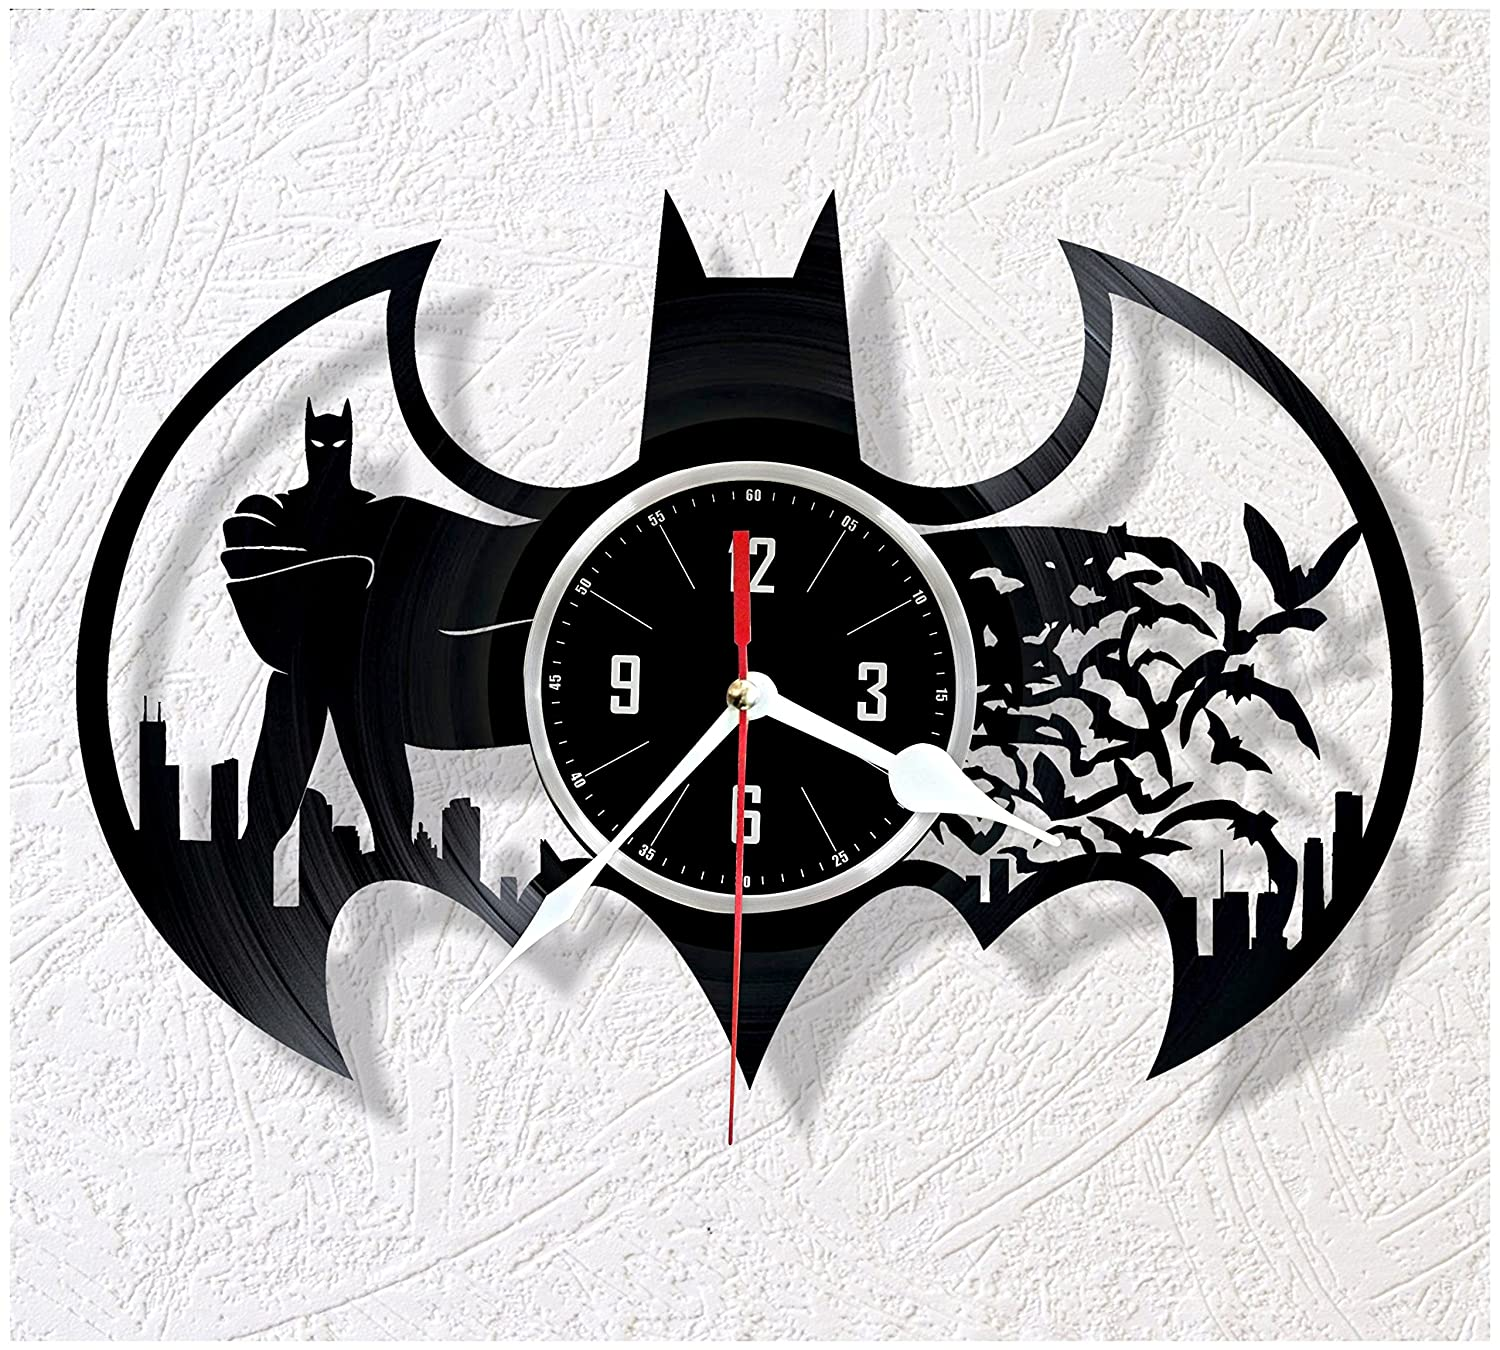 BATMAN vinyl wall clock - great gift for birthday, anniversary or any other occasion - beautiful home decor - unique design that made out of retro vinyl ...